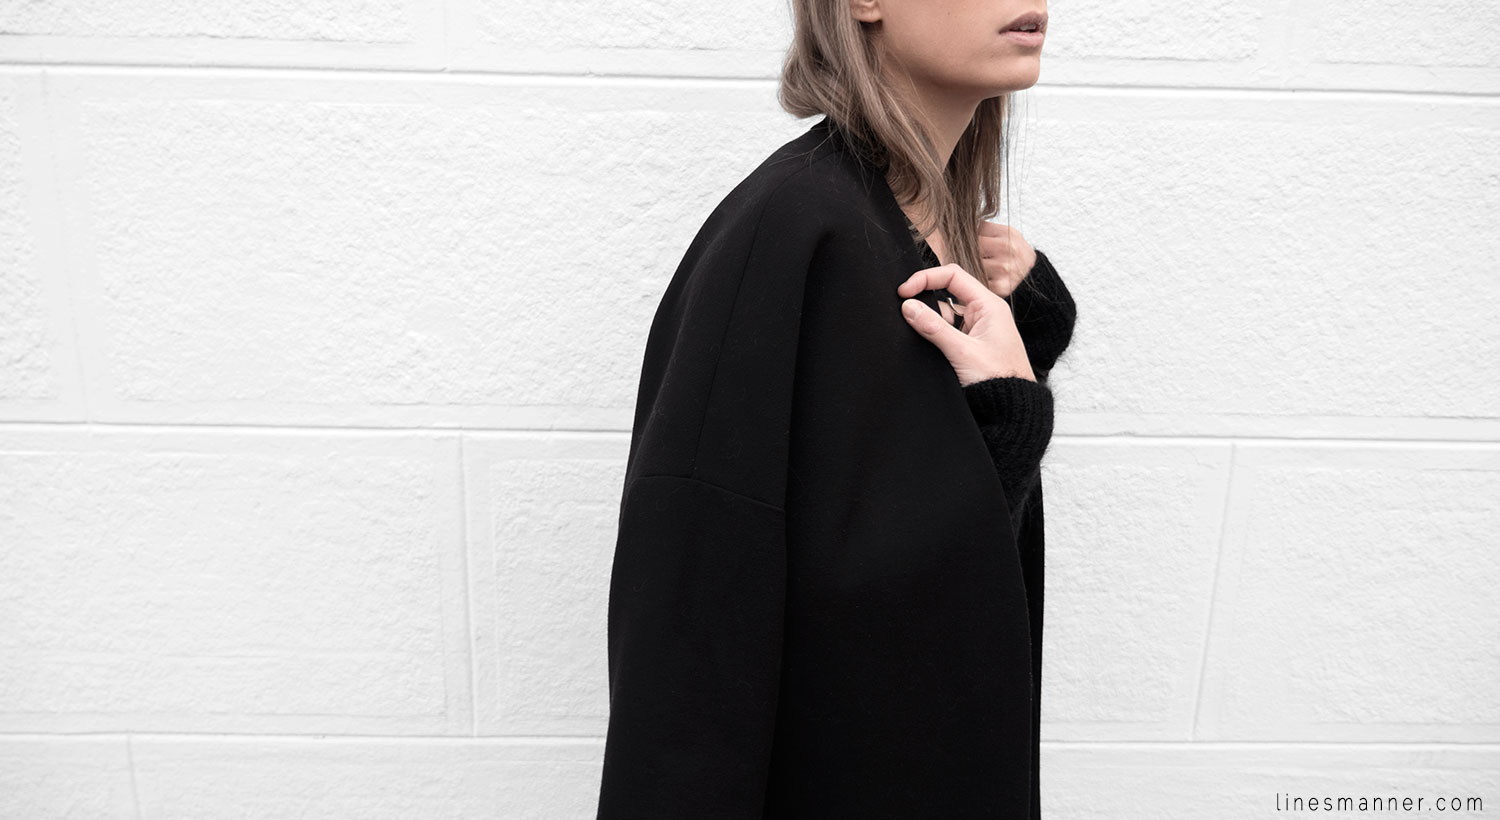 Lines-Manner-Timeless-Comfort-Essentials-Monochrome-Trend-Minimal-Textures-Oversized-Warm-Fall-Leather-Details-Simplicity-Modern-Basics-Outfit-Structure-5